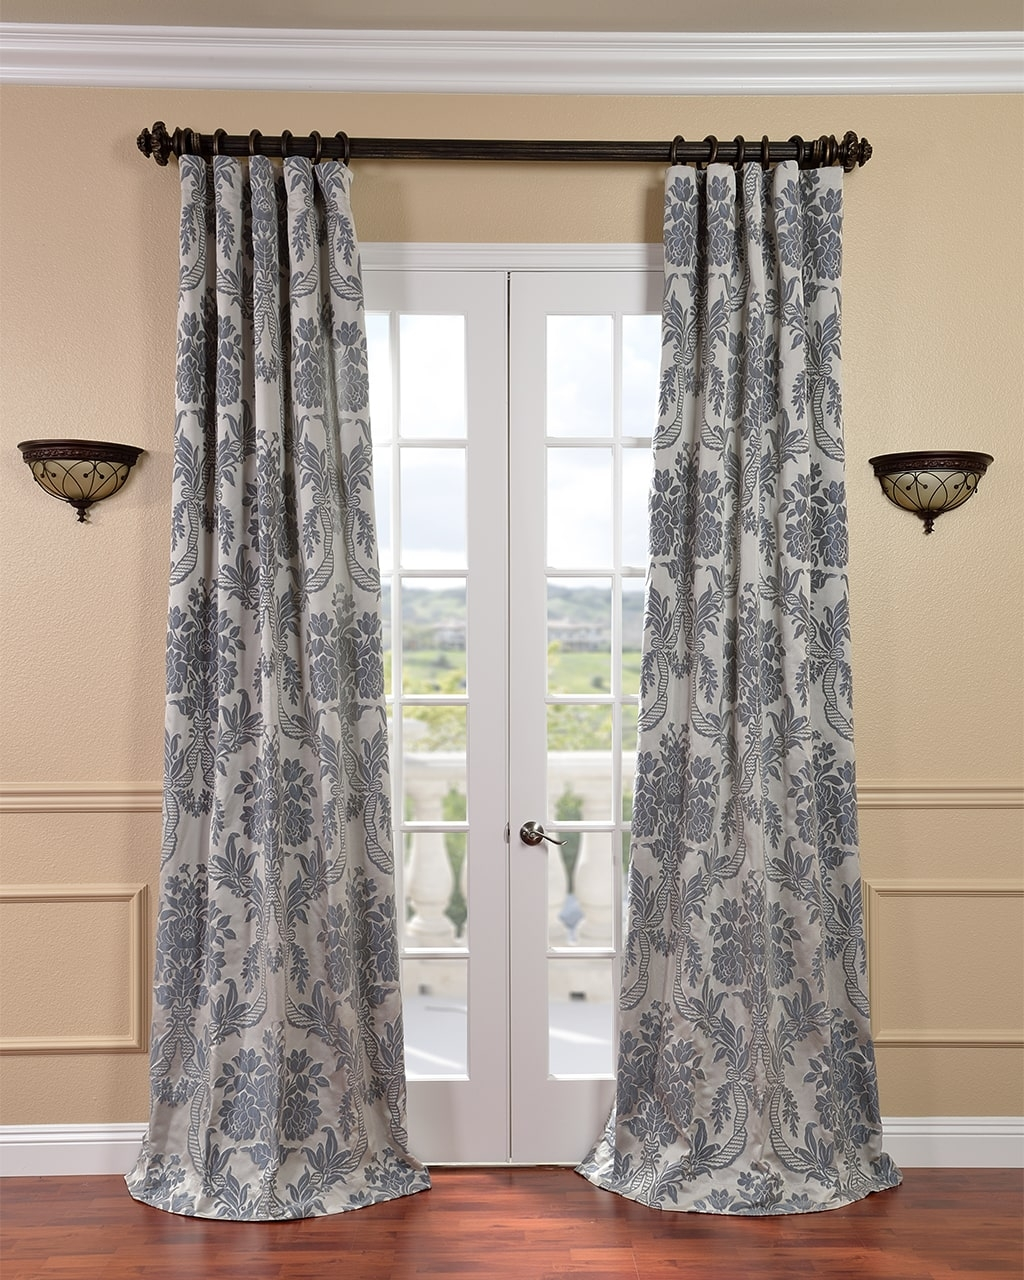 120 Inches Curtains Drapes Shop The Best Brands Overstock Within Extra Long Blackout Curtains (Image 1 of 15)